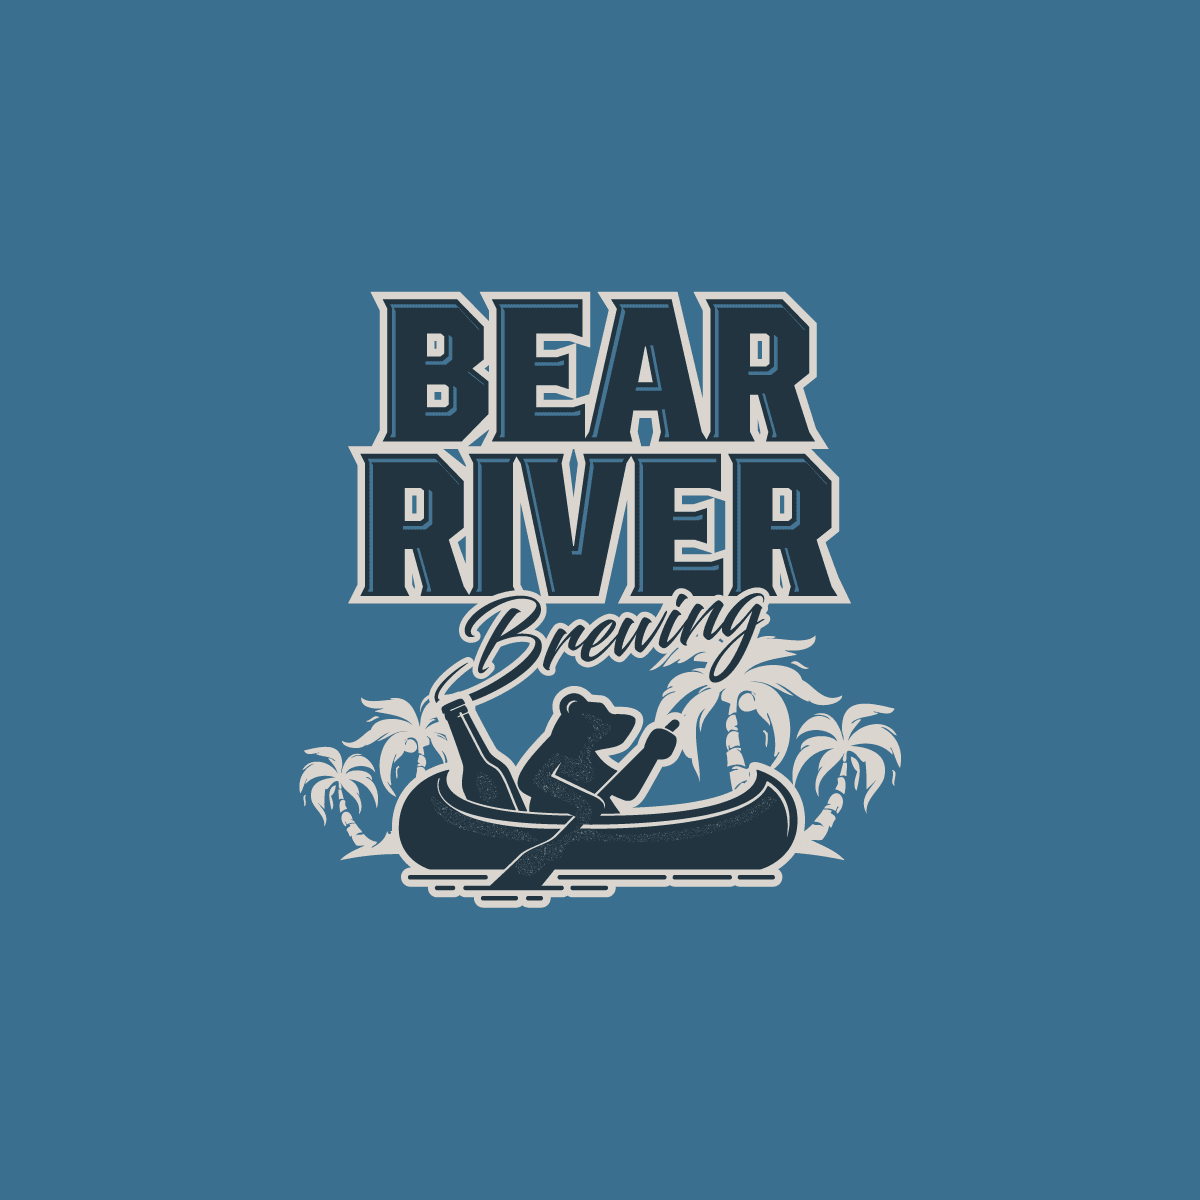 Bear River Brewing Branding 02 1 - Ach, tie obaly – Bear River Brewing